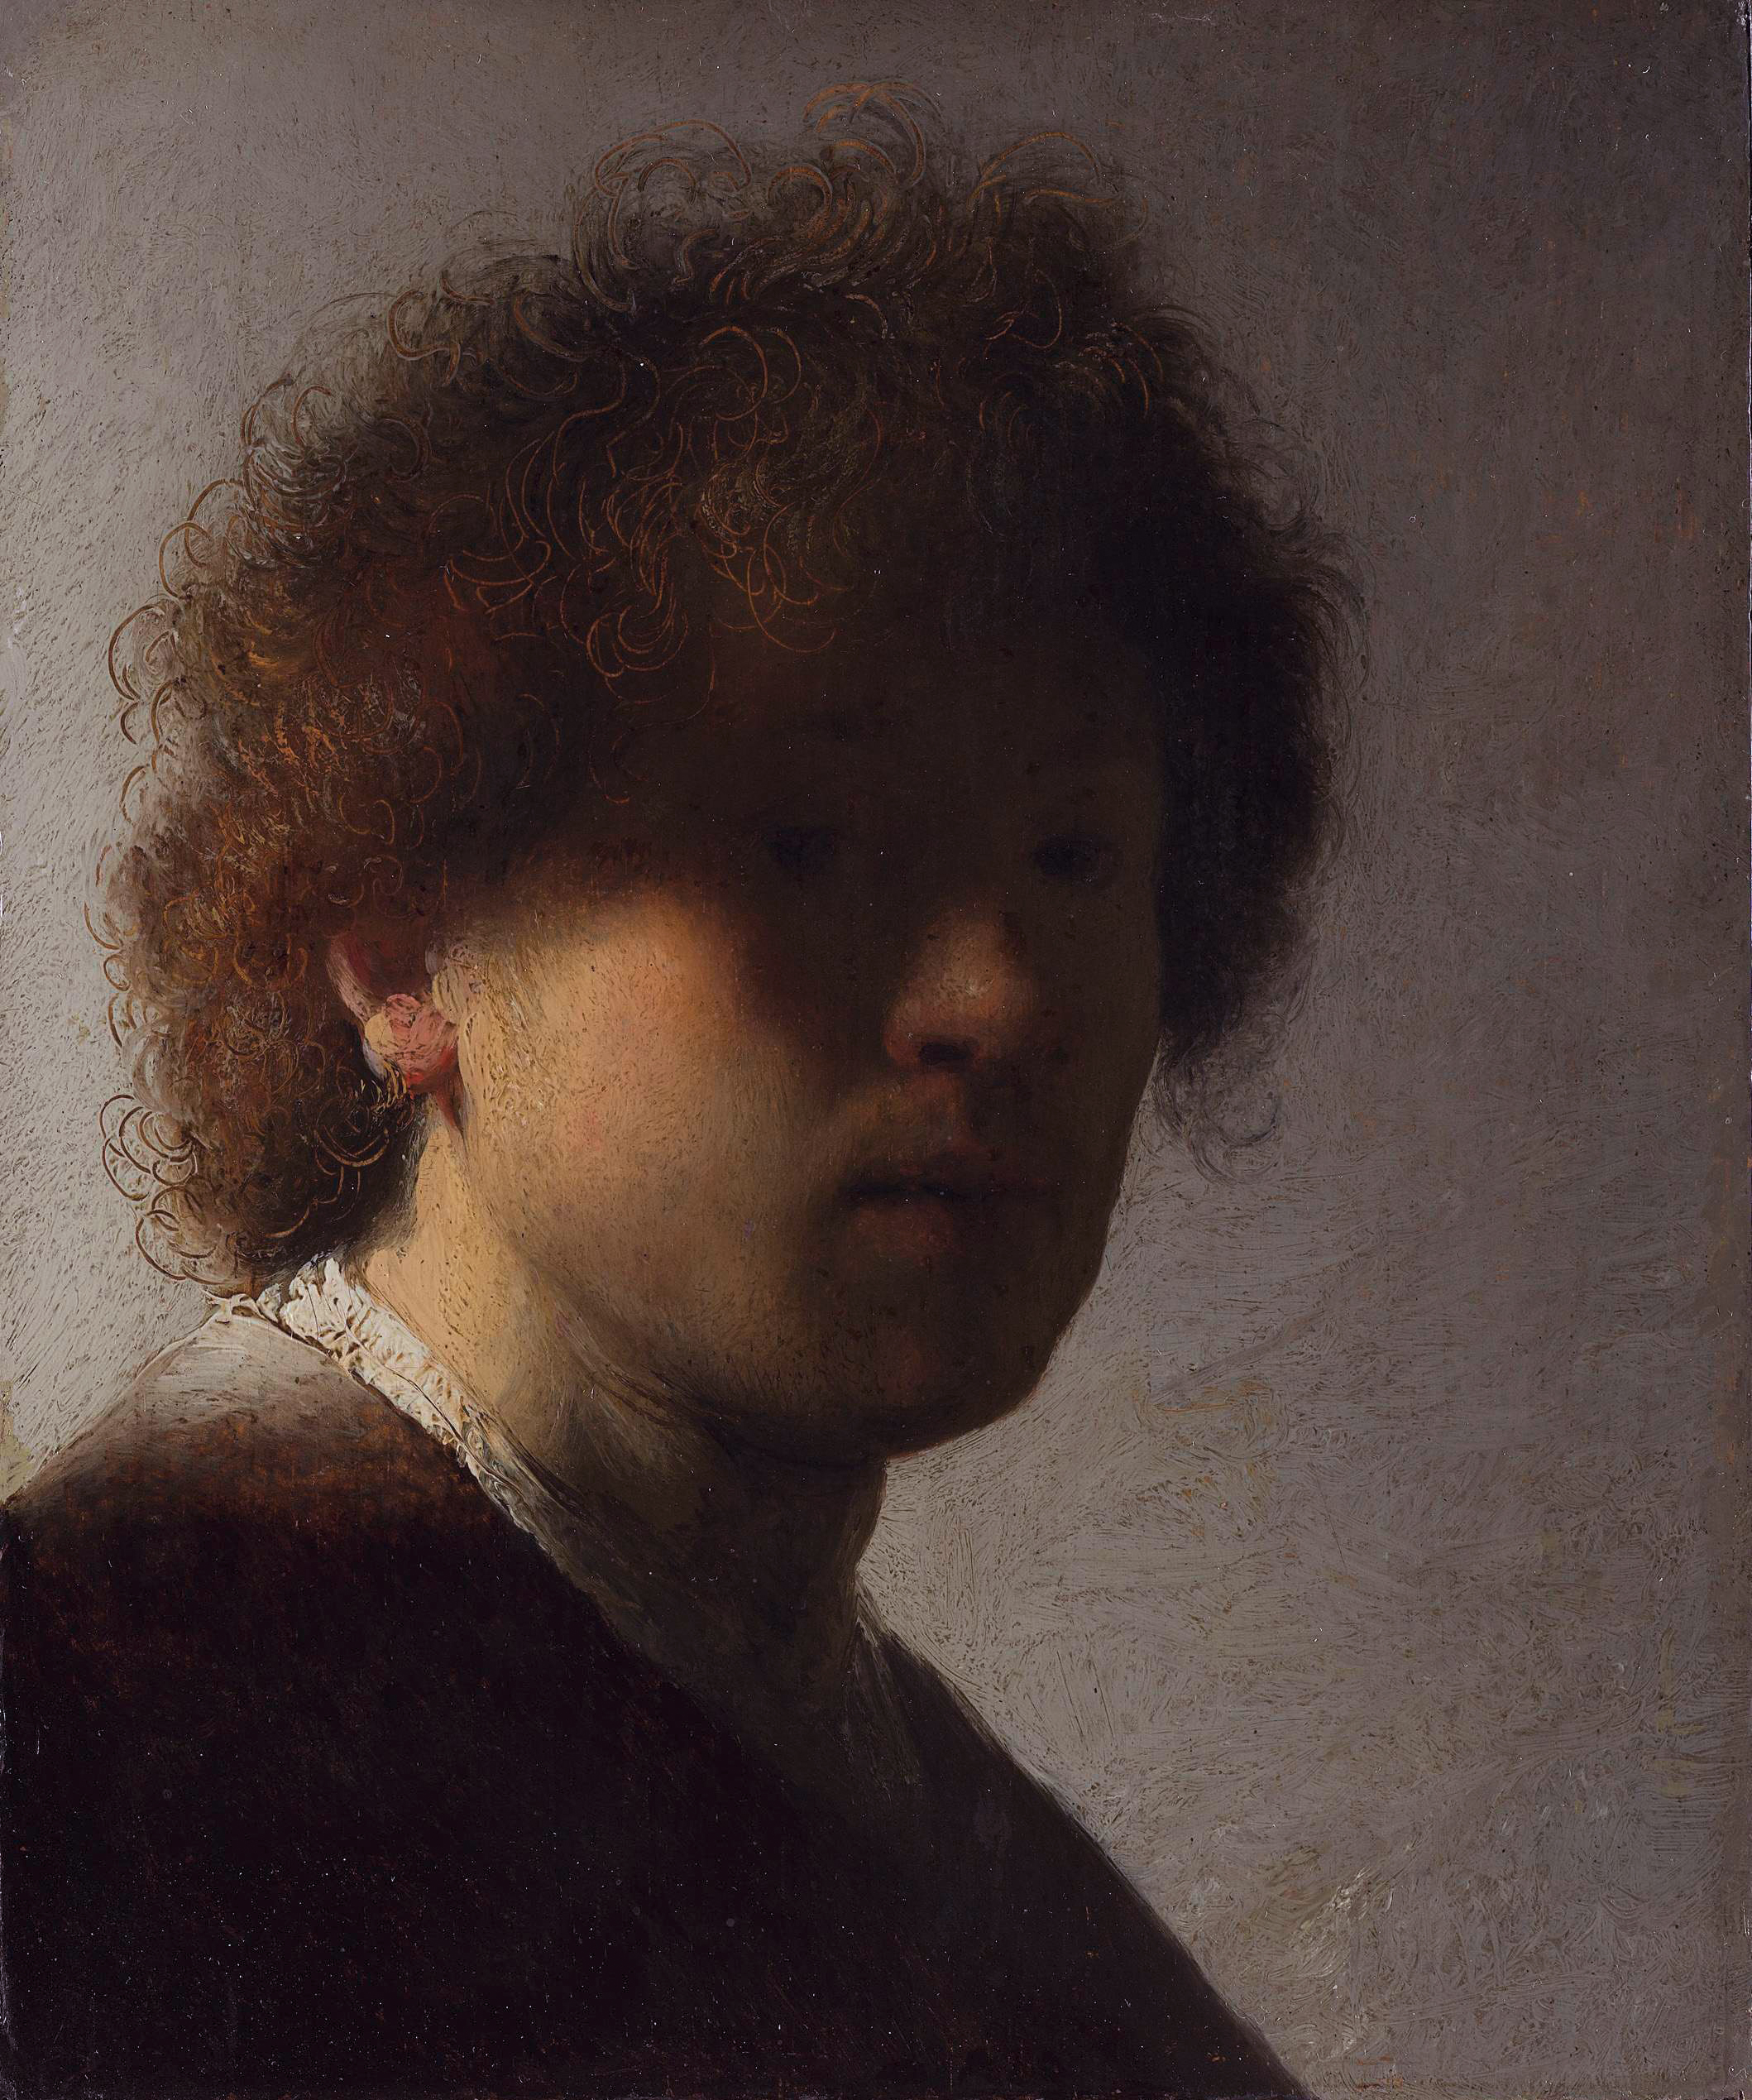 Self-Portrait with Dishevelled Hair - Wikipedia